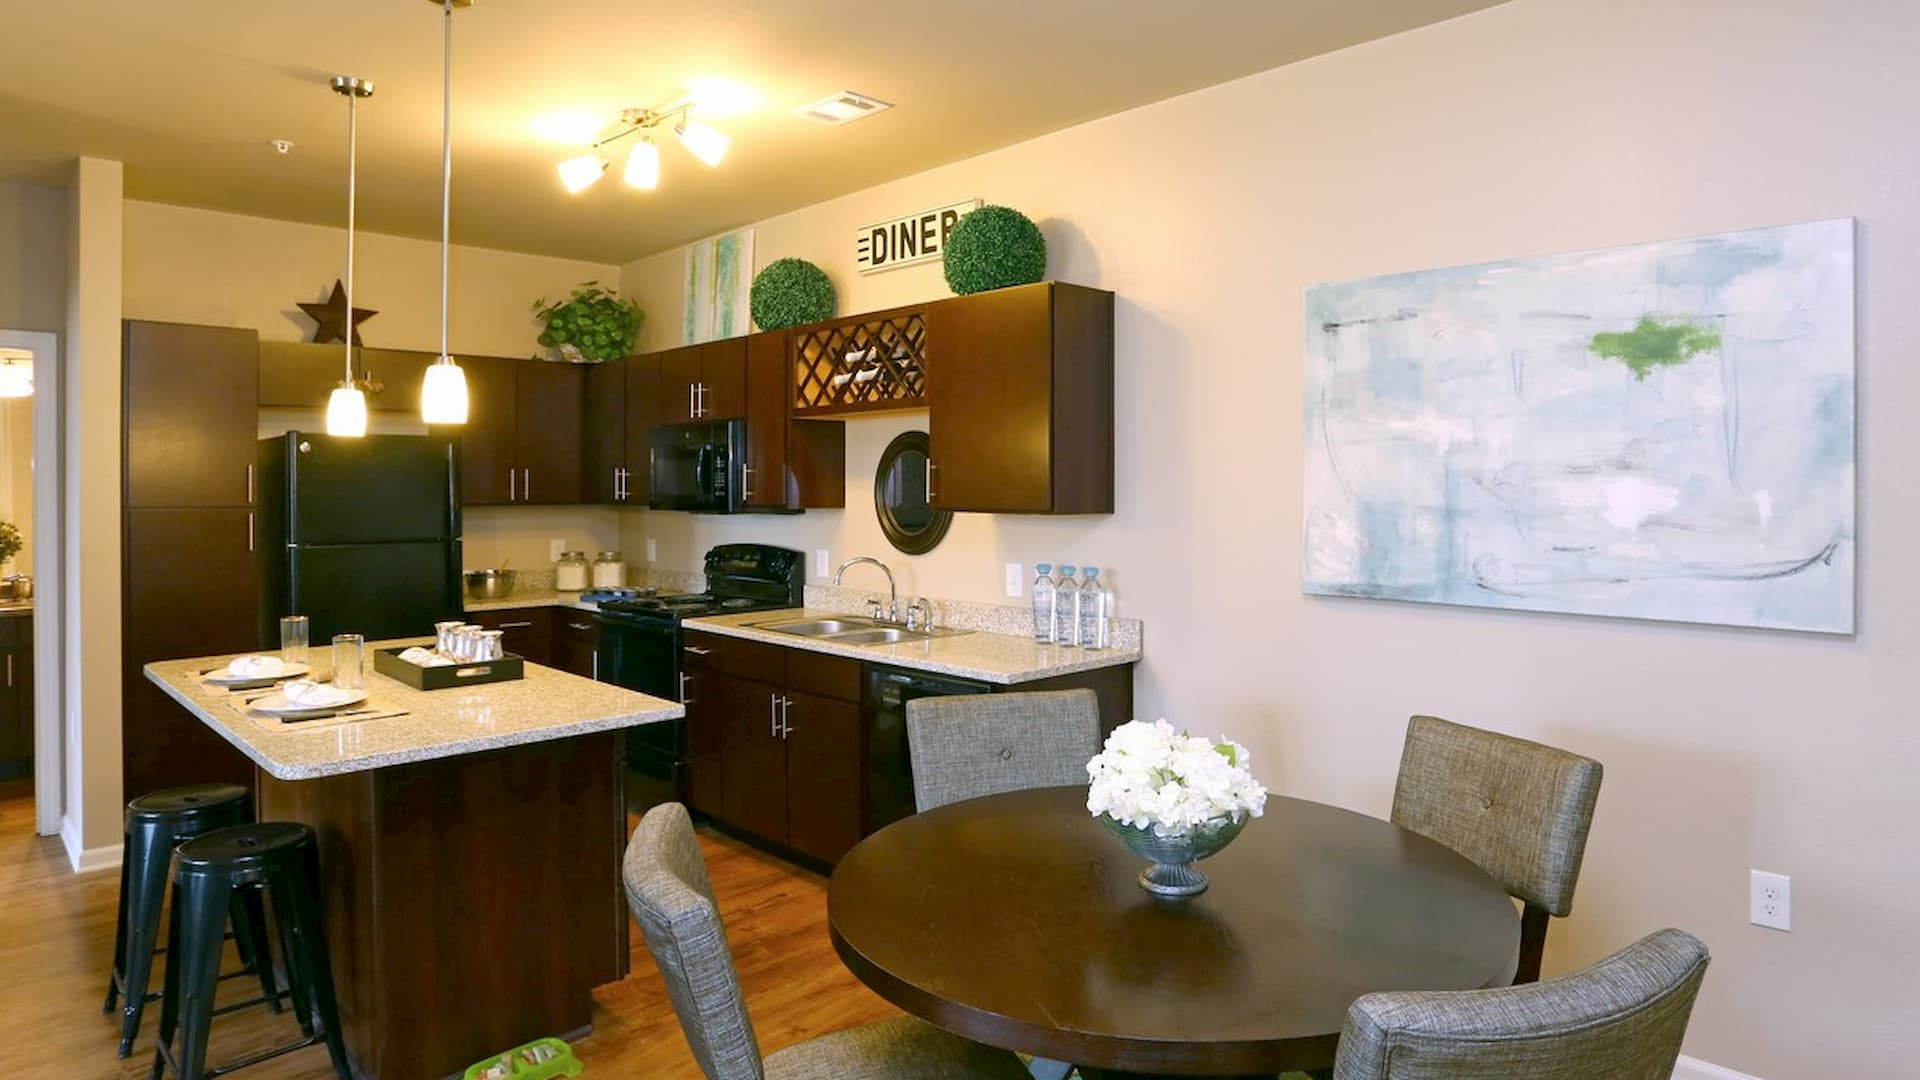 springs-at-orchard-road-apartments-north-aurora-il-2br-2ba---kitchen (2)